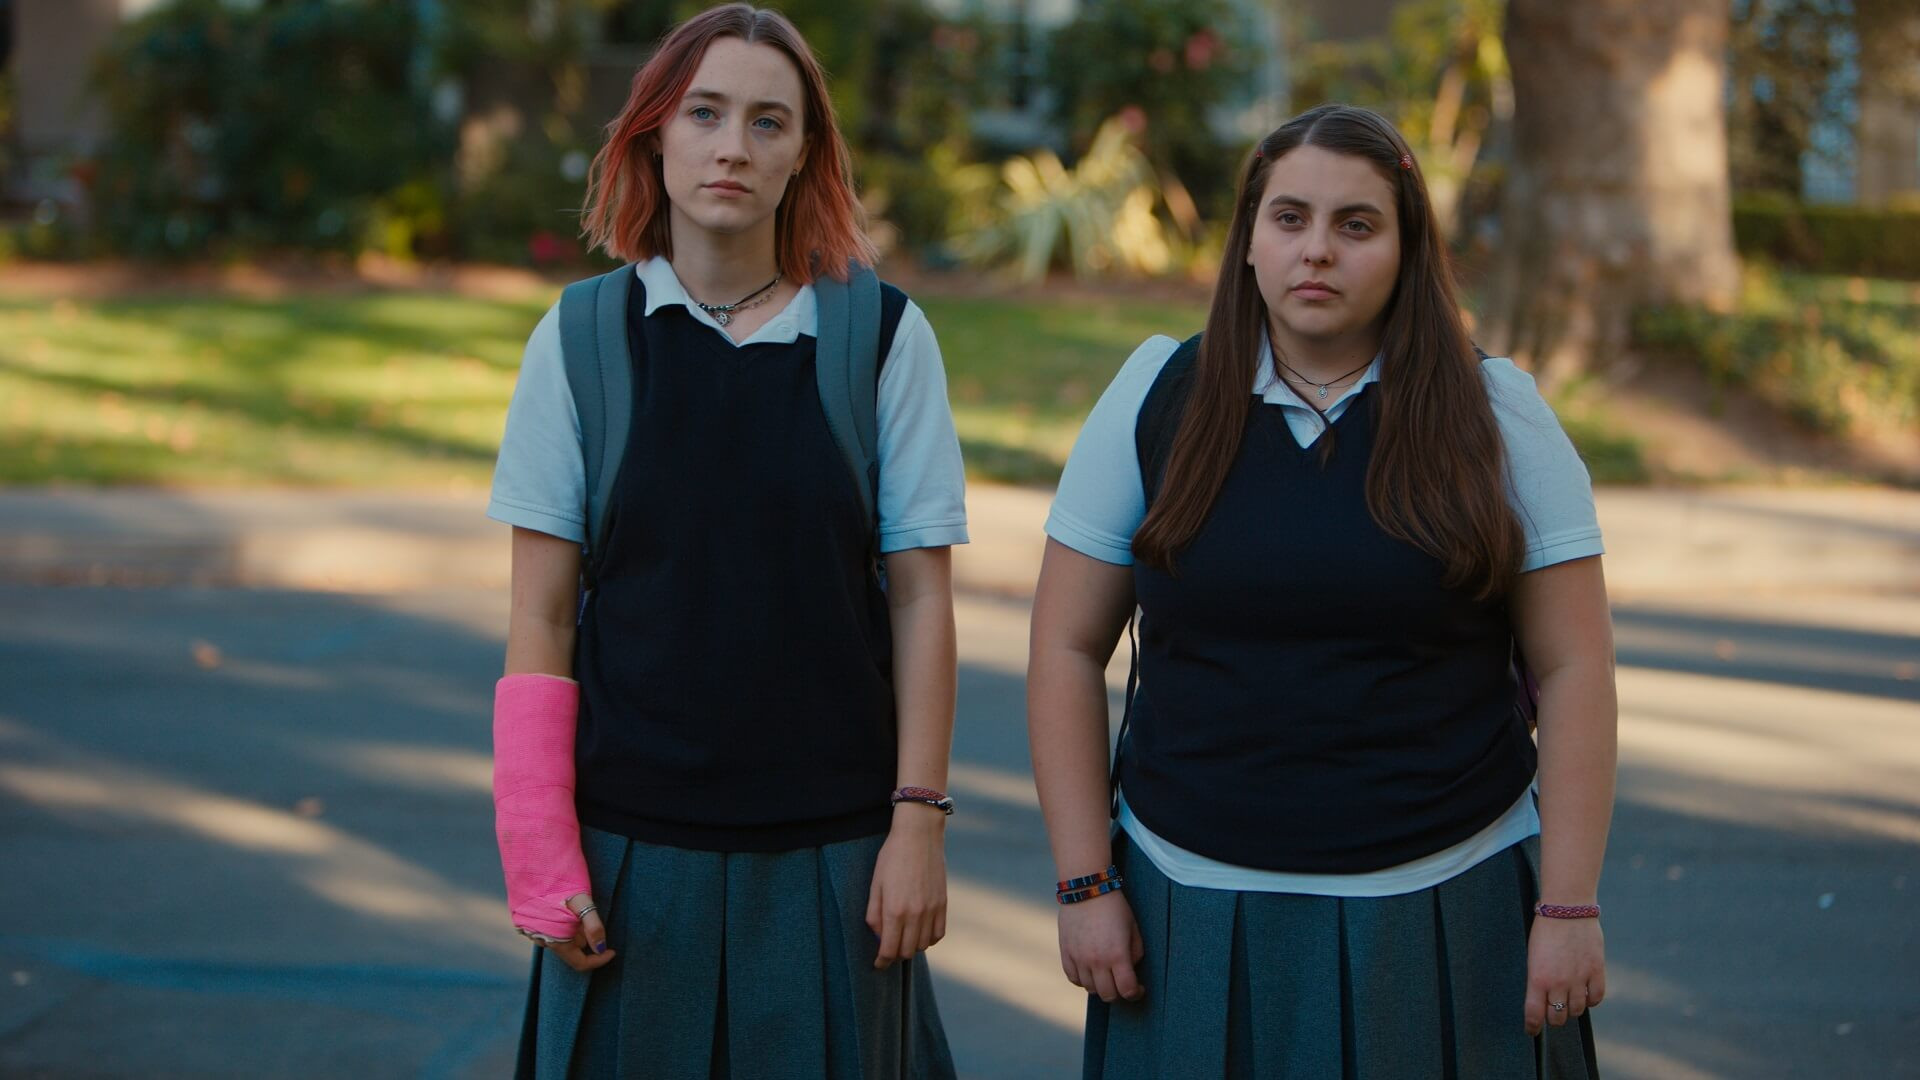 Lady Bird: A Conversation